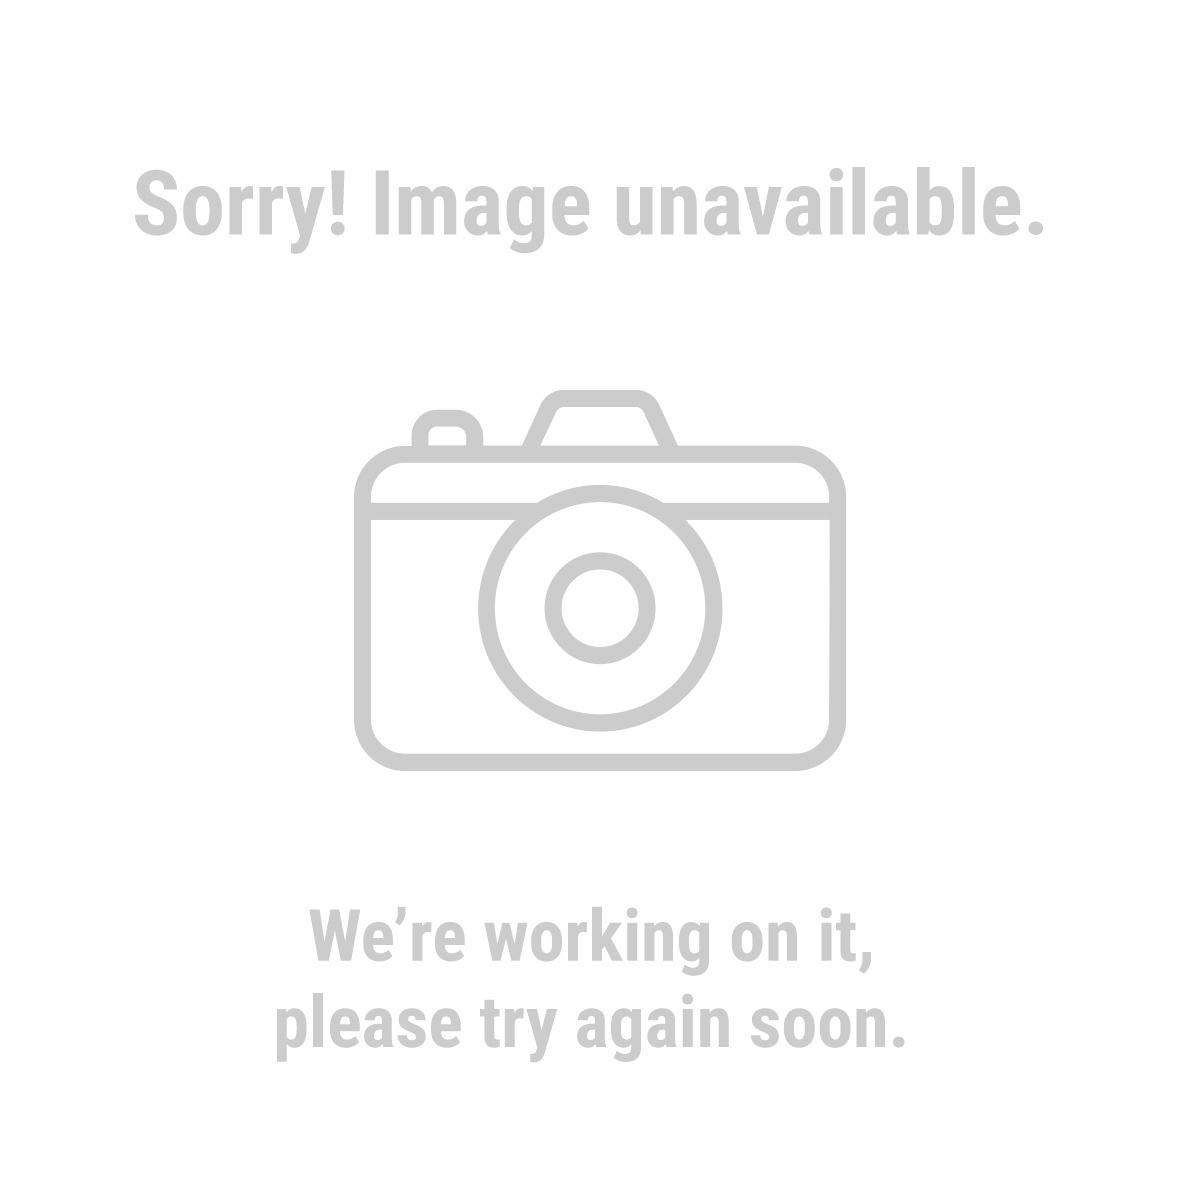 Warrior 61545 3/16 in. Titanium Nitride Coated High Speed Steel Drill Bits, 7 Piece